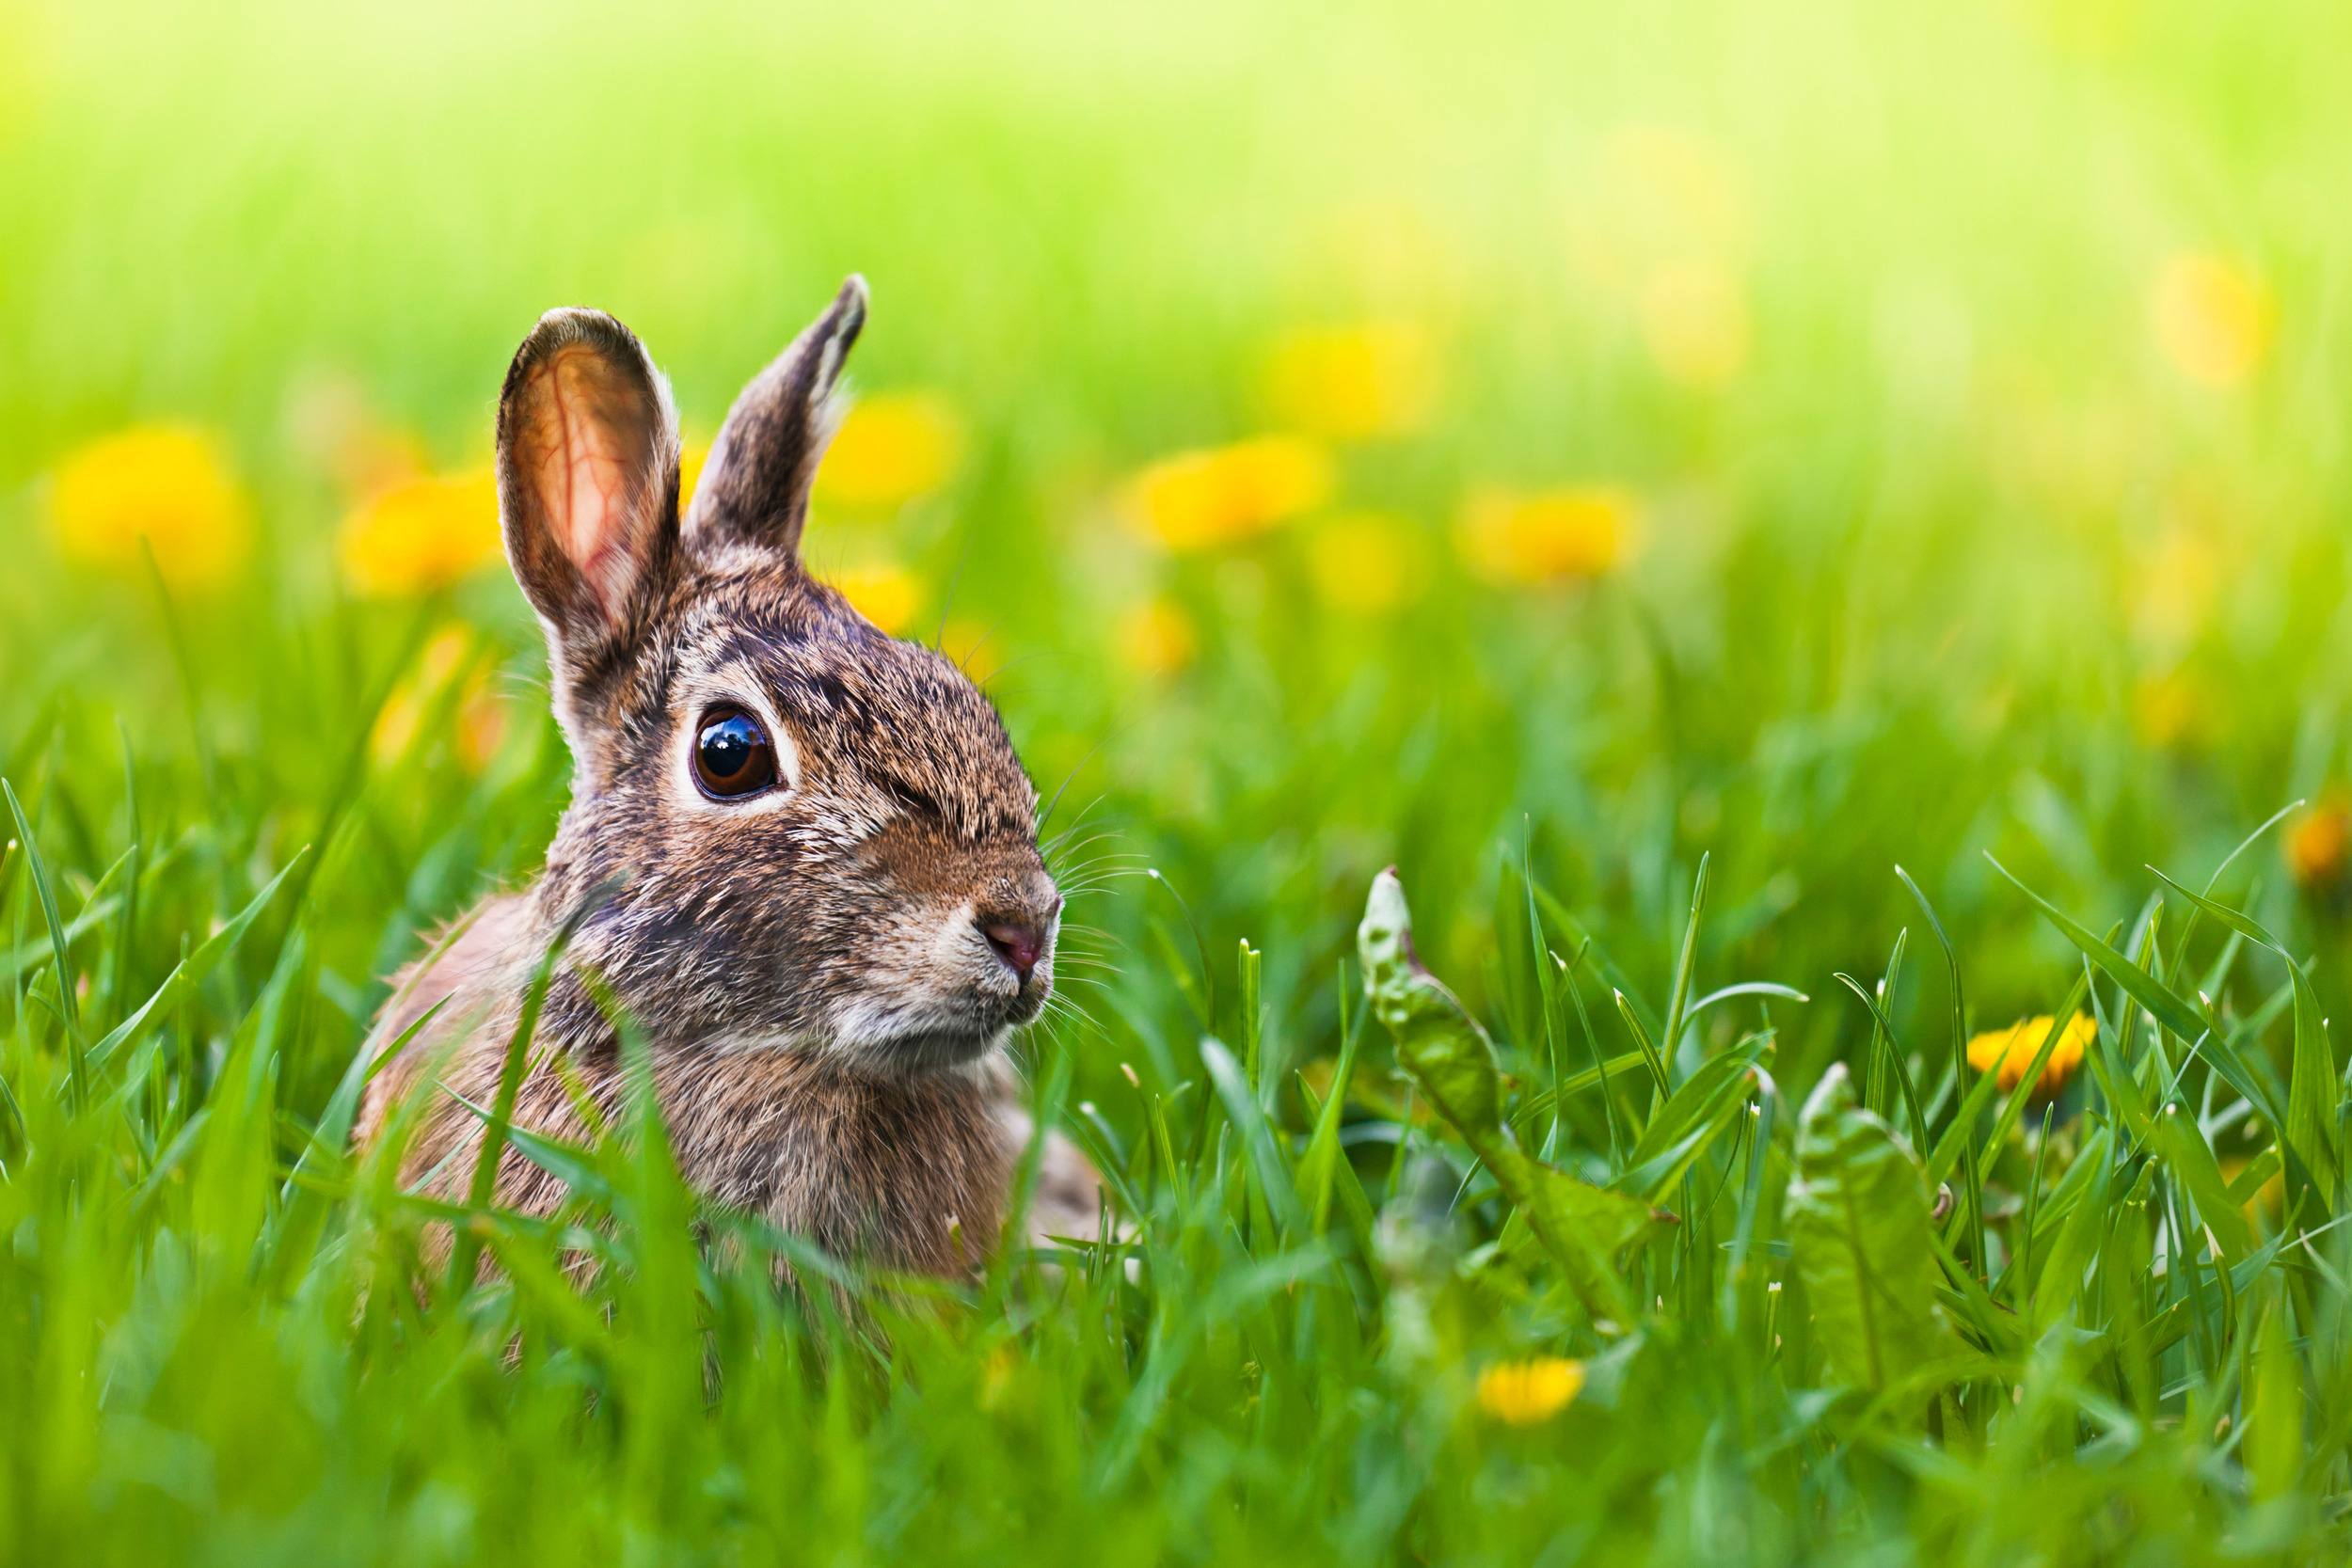 """"""" Late for Easter """" by  Benson Kua  is licensed under  CC BY-SA 2.0 ."""